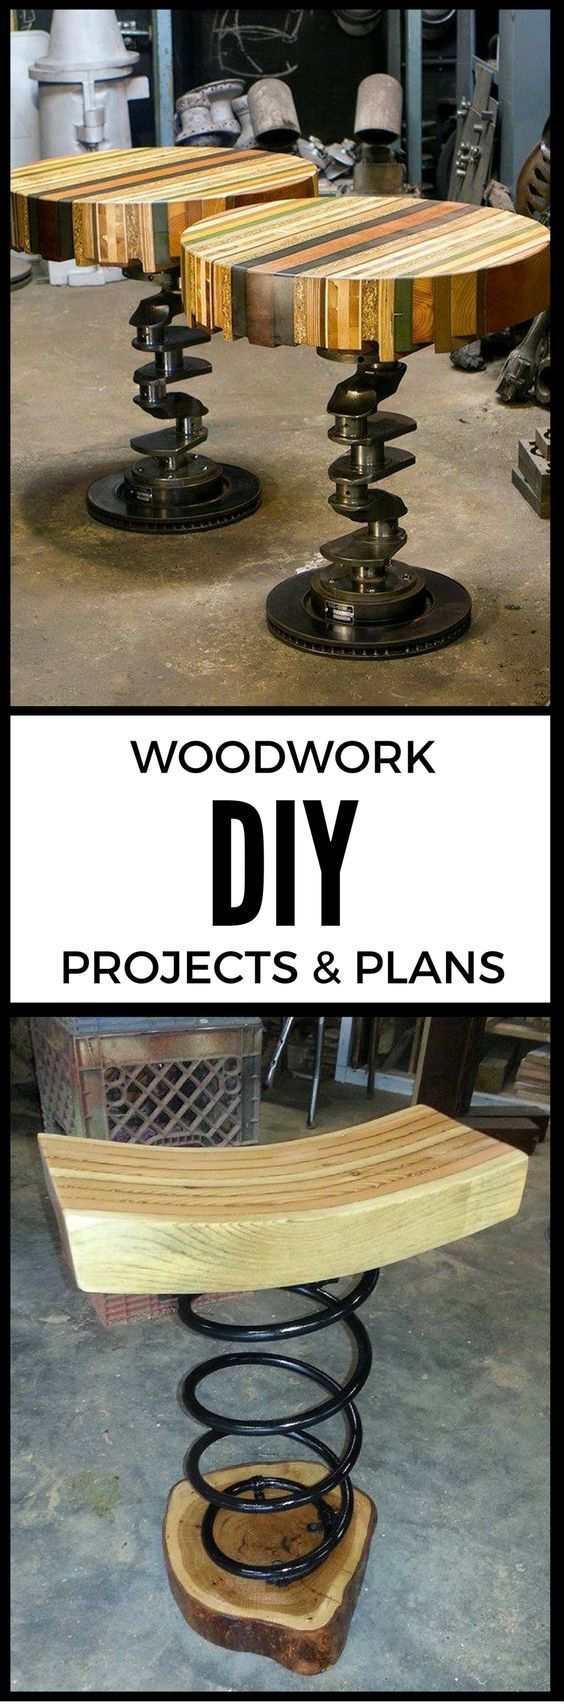 16,000 DIY Woodworking Projects -Do It Yourself DIY Garage Makeover Ideas Include Storage, Organization, Shelves, and Project Plans for Cool New Garage Decor /aegisgears/